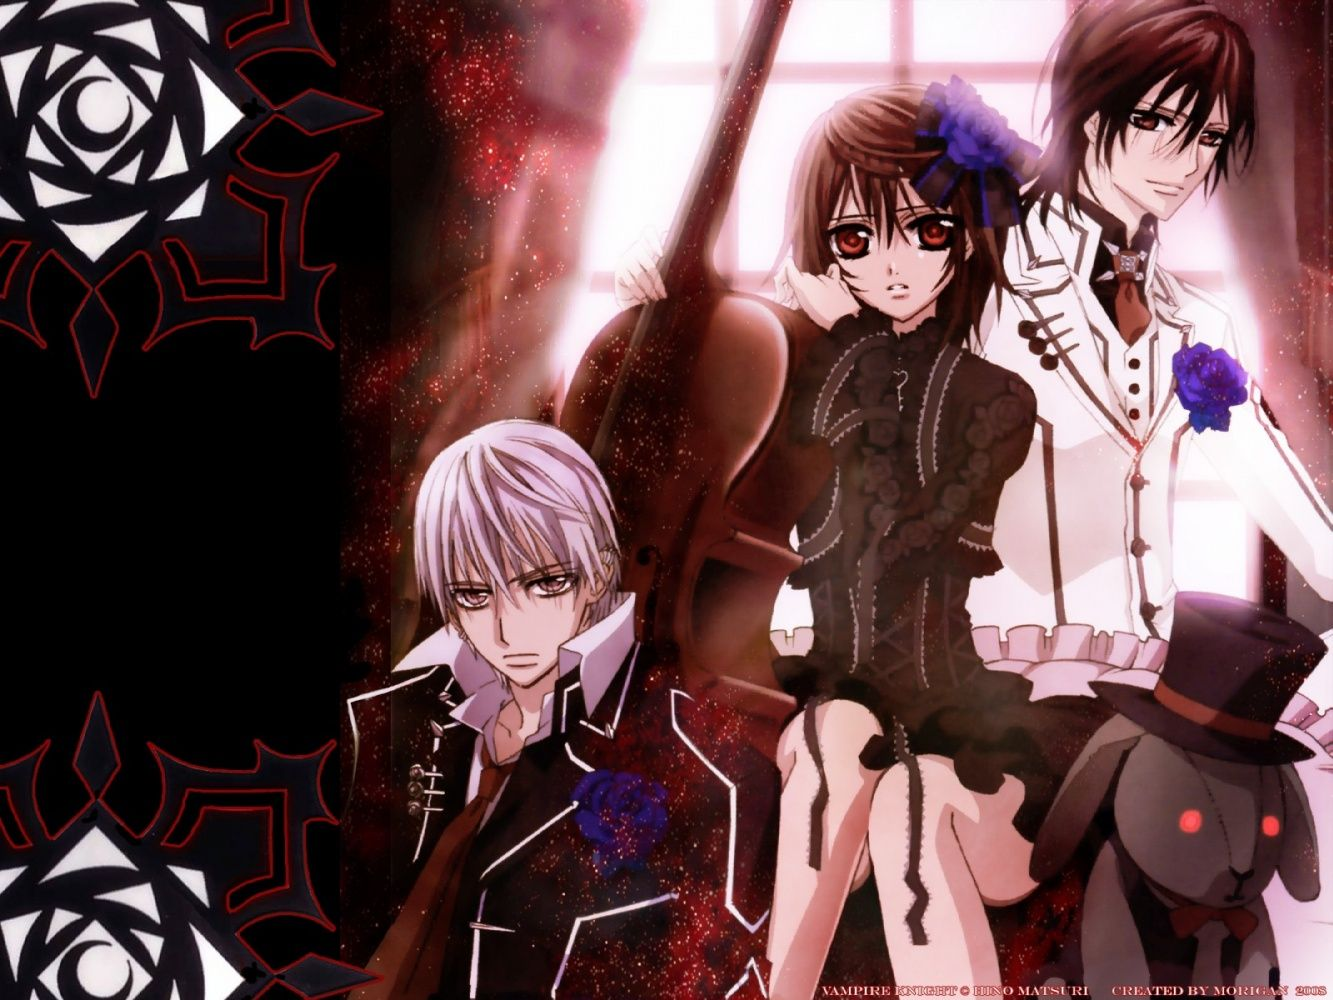 96 Vampire Knight HD Wallpapers Backgrounds - Wallpaper Abyss Vampire Knight Pinterest ...